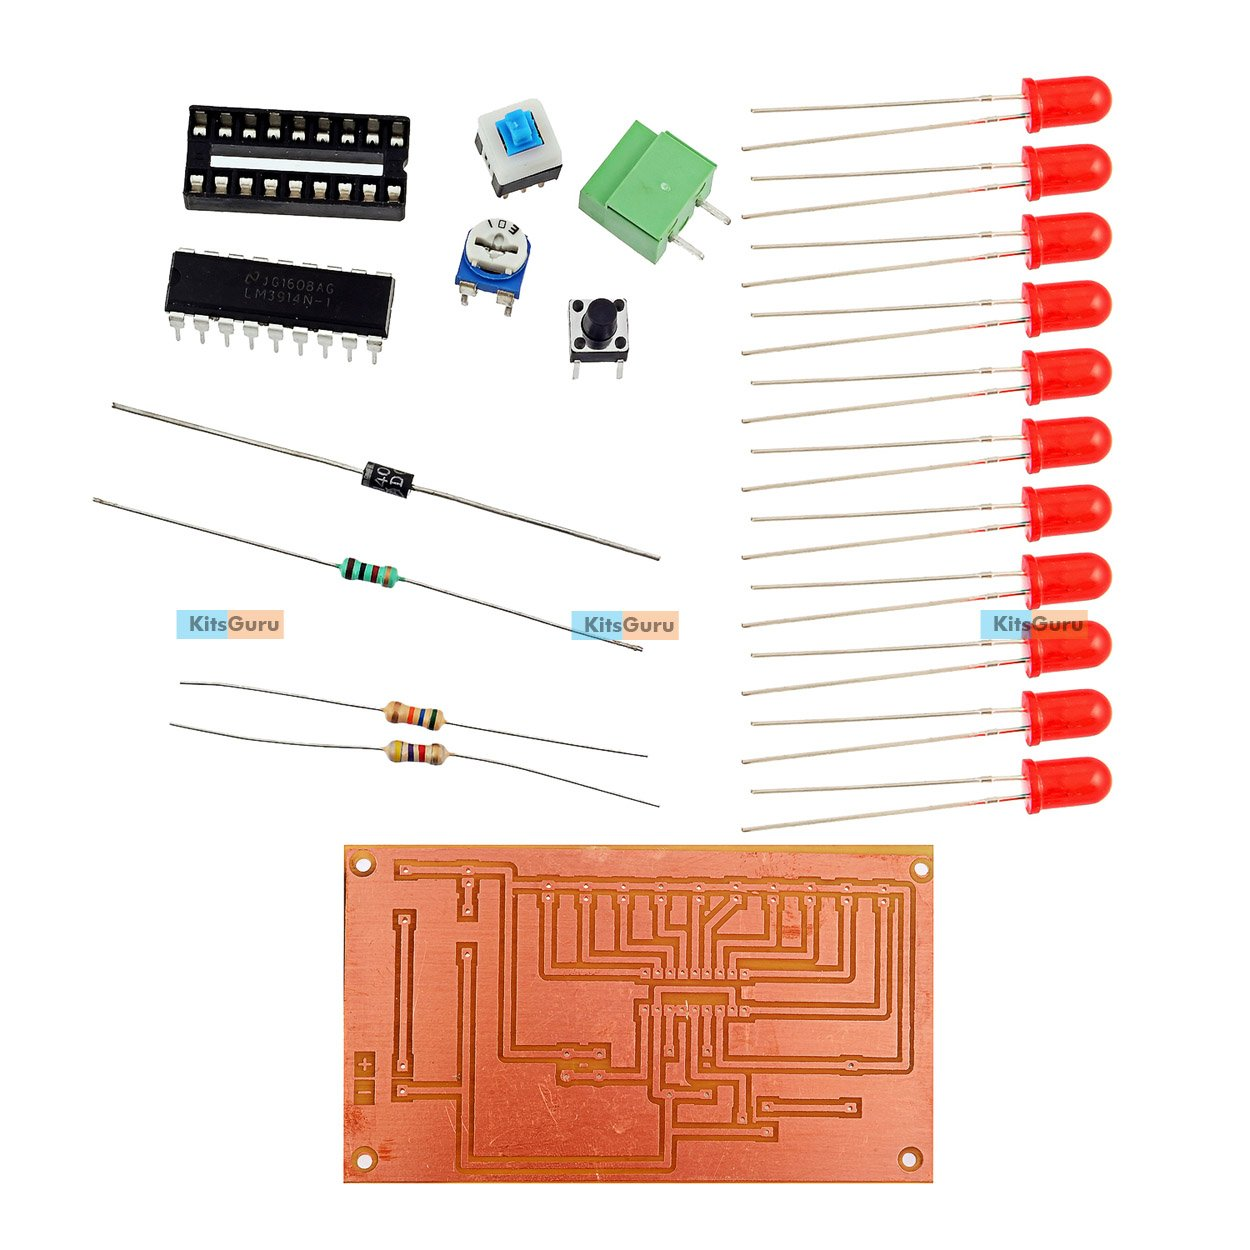 Kitsguru Diy Kit Basic Electronic Circuits Battery Level Indicator Ic Lm3914 Pin Diagram